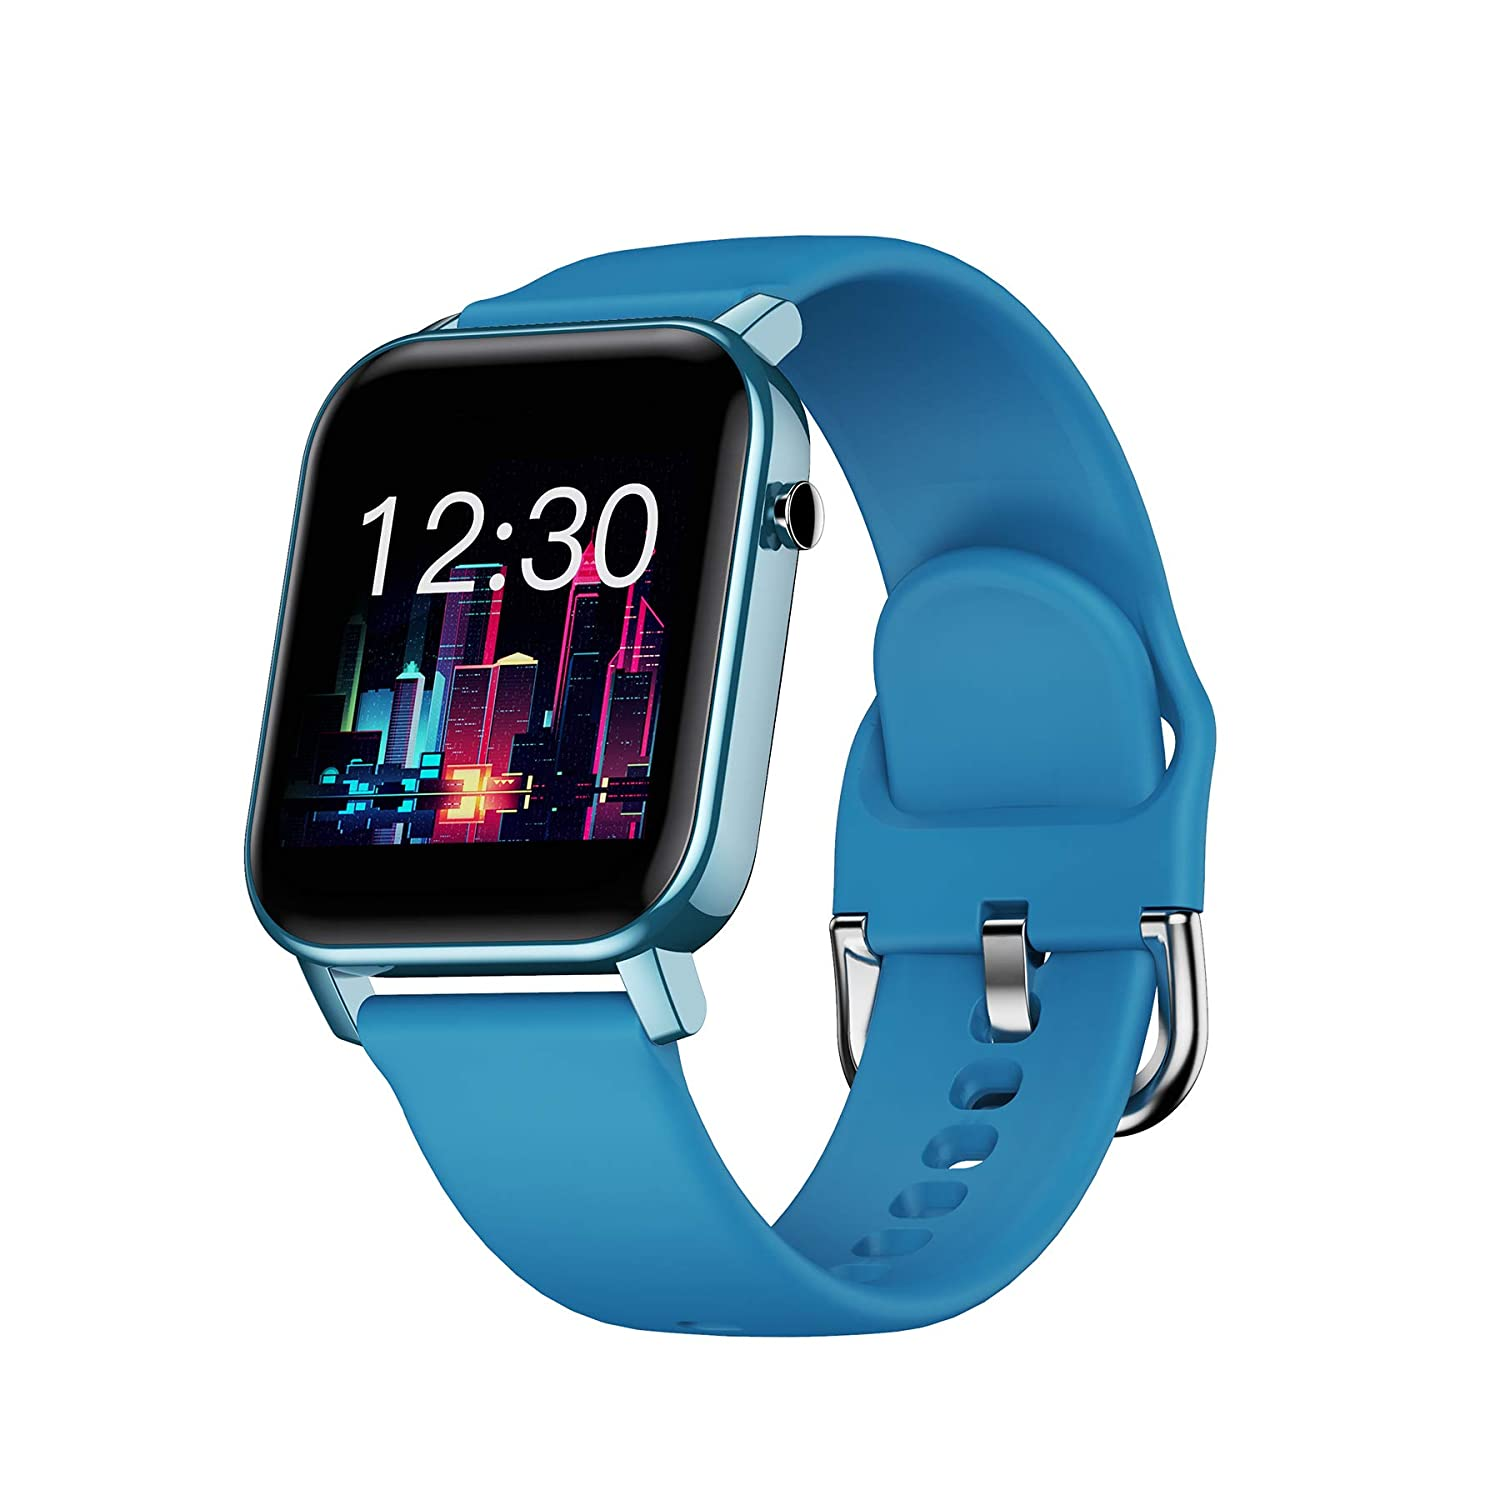 Hoteon FT02 Best fitness smartwatch under the price of rupees 2000